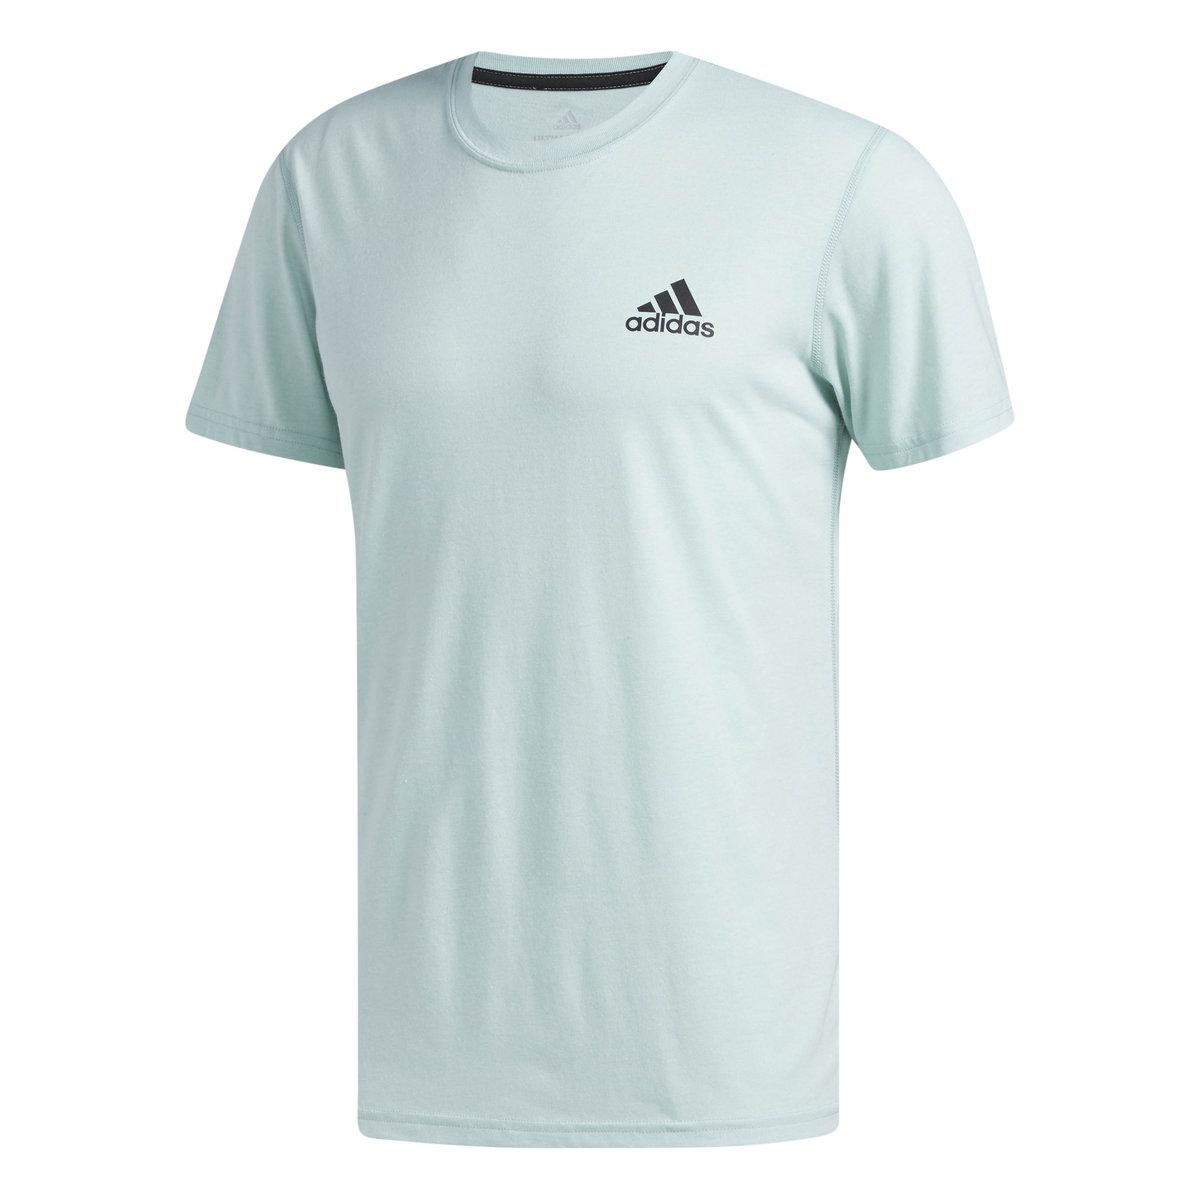 89c21c89d798a Lyst - Adidas Ultimate Short Sleeve Tee for Men